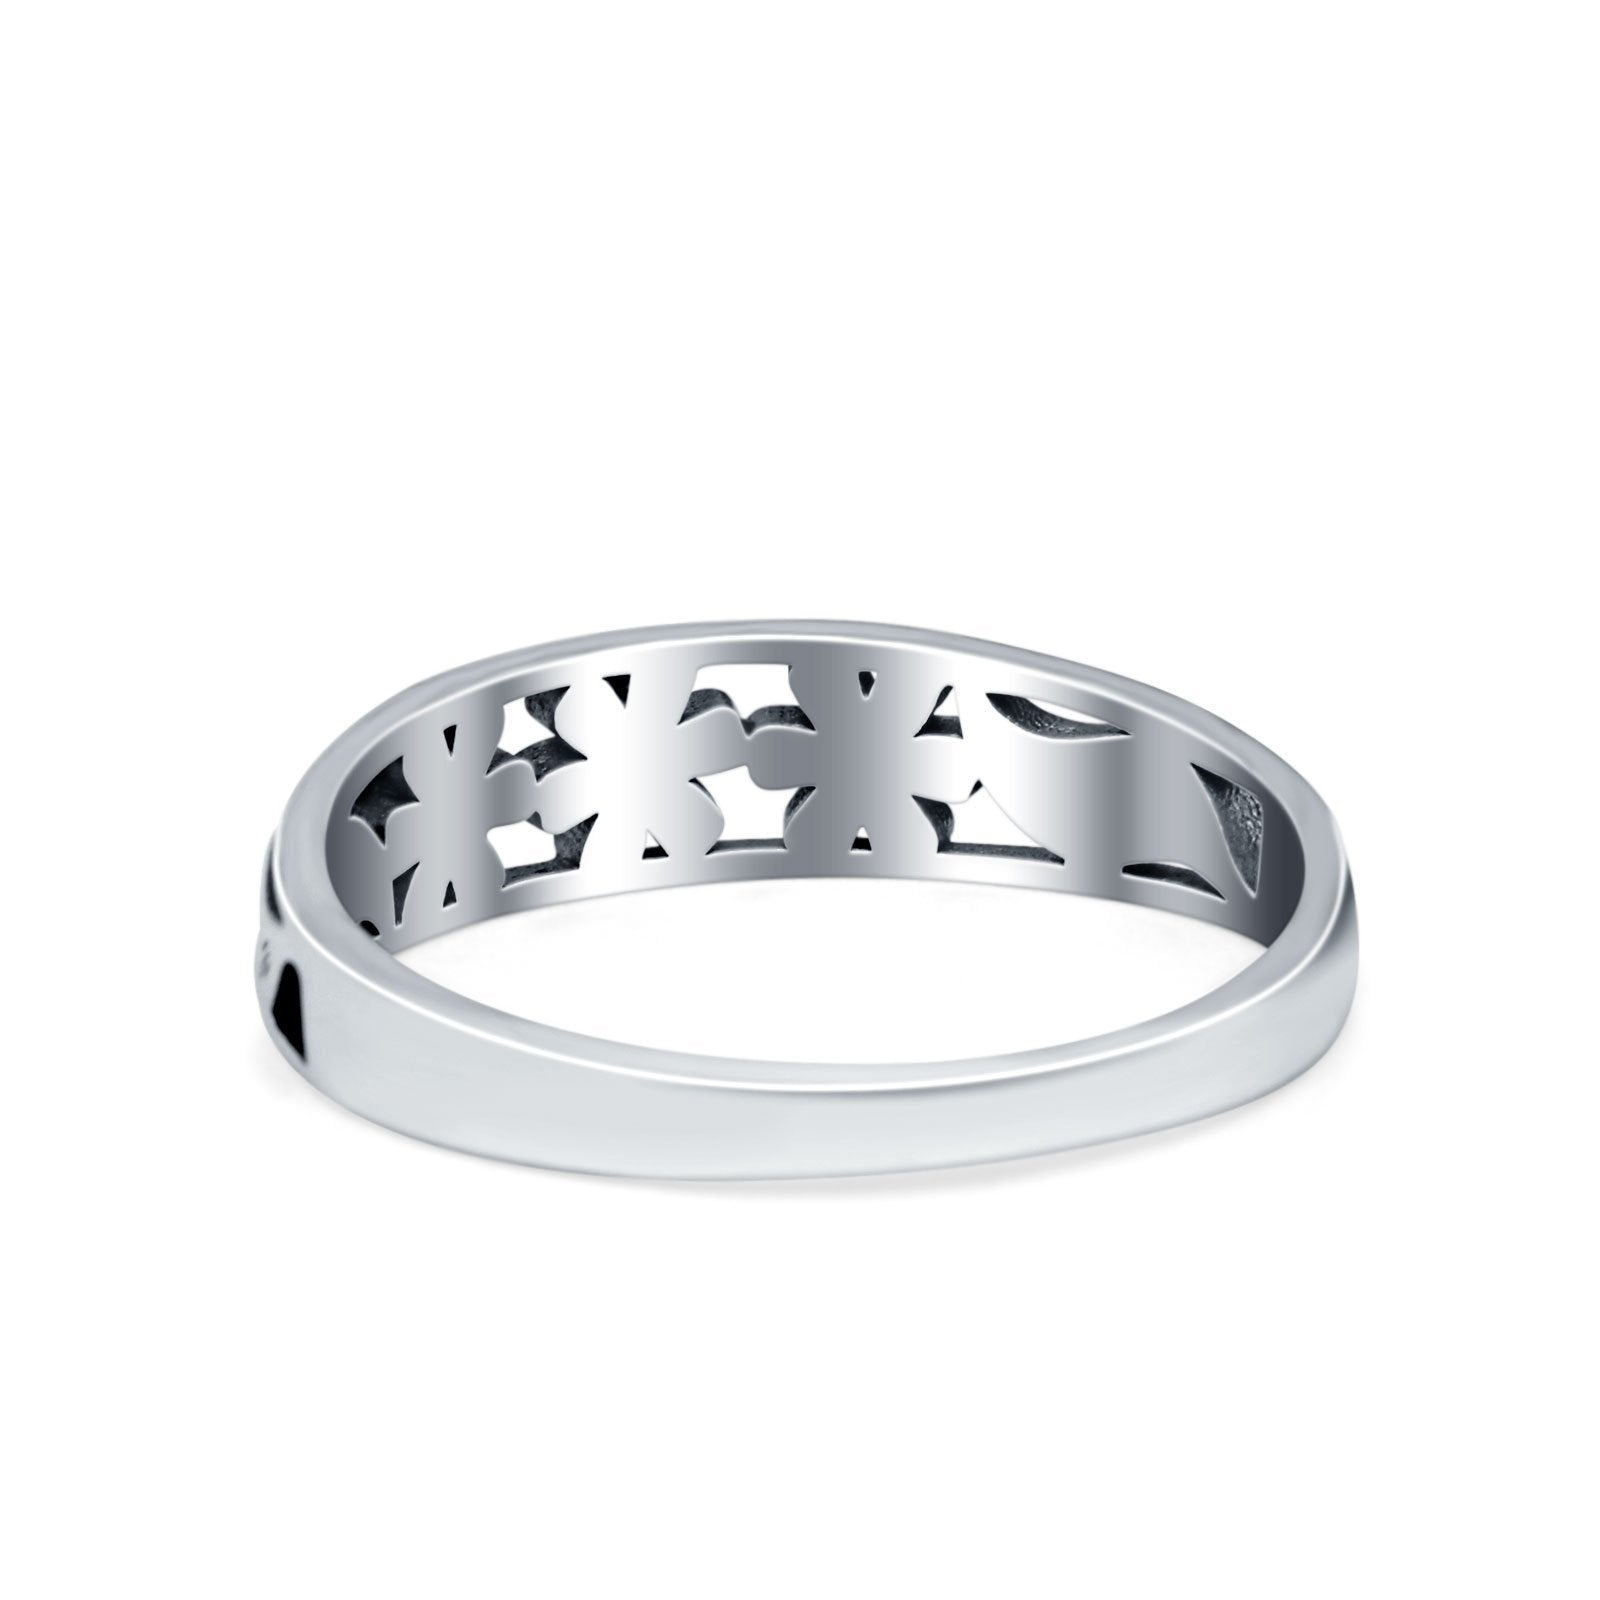 3 Flower Plain Ring Band Oxidized 925 Sterling Silver